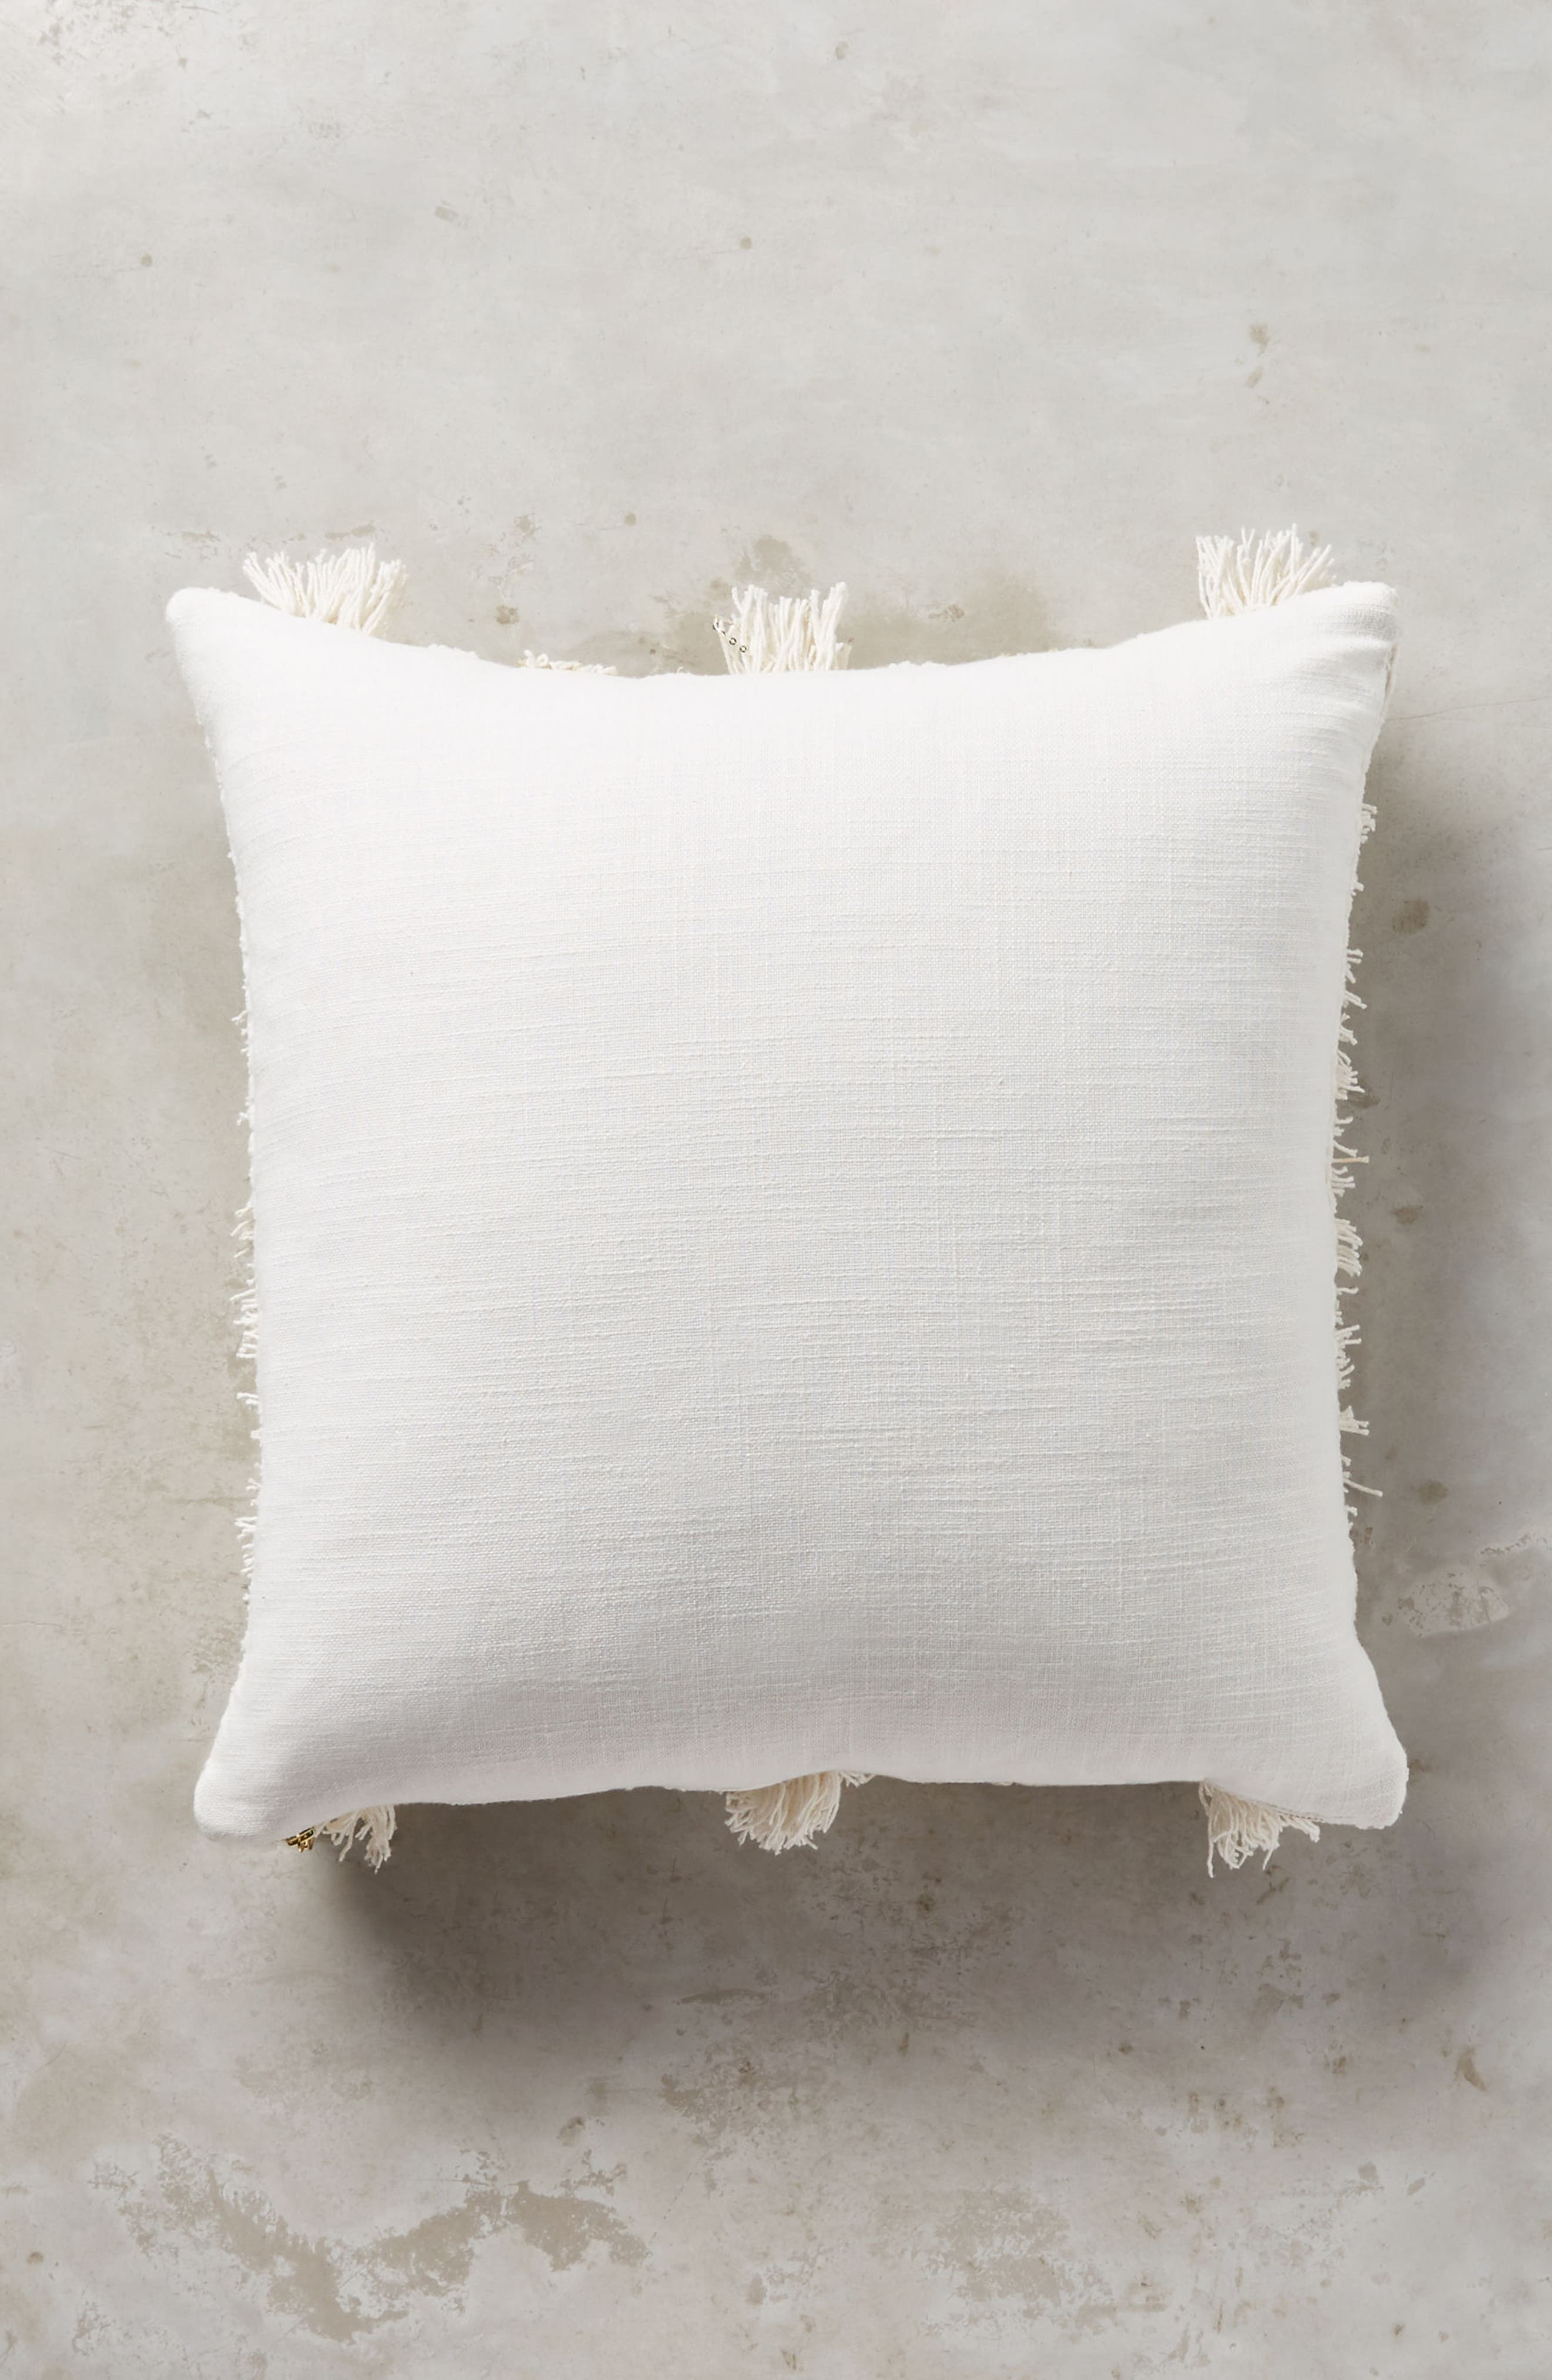 ANTHROPOLOGIE,                             Indira Accent Pillow,                             Alternate thumbnail 2, color,                             900